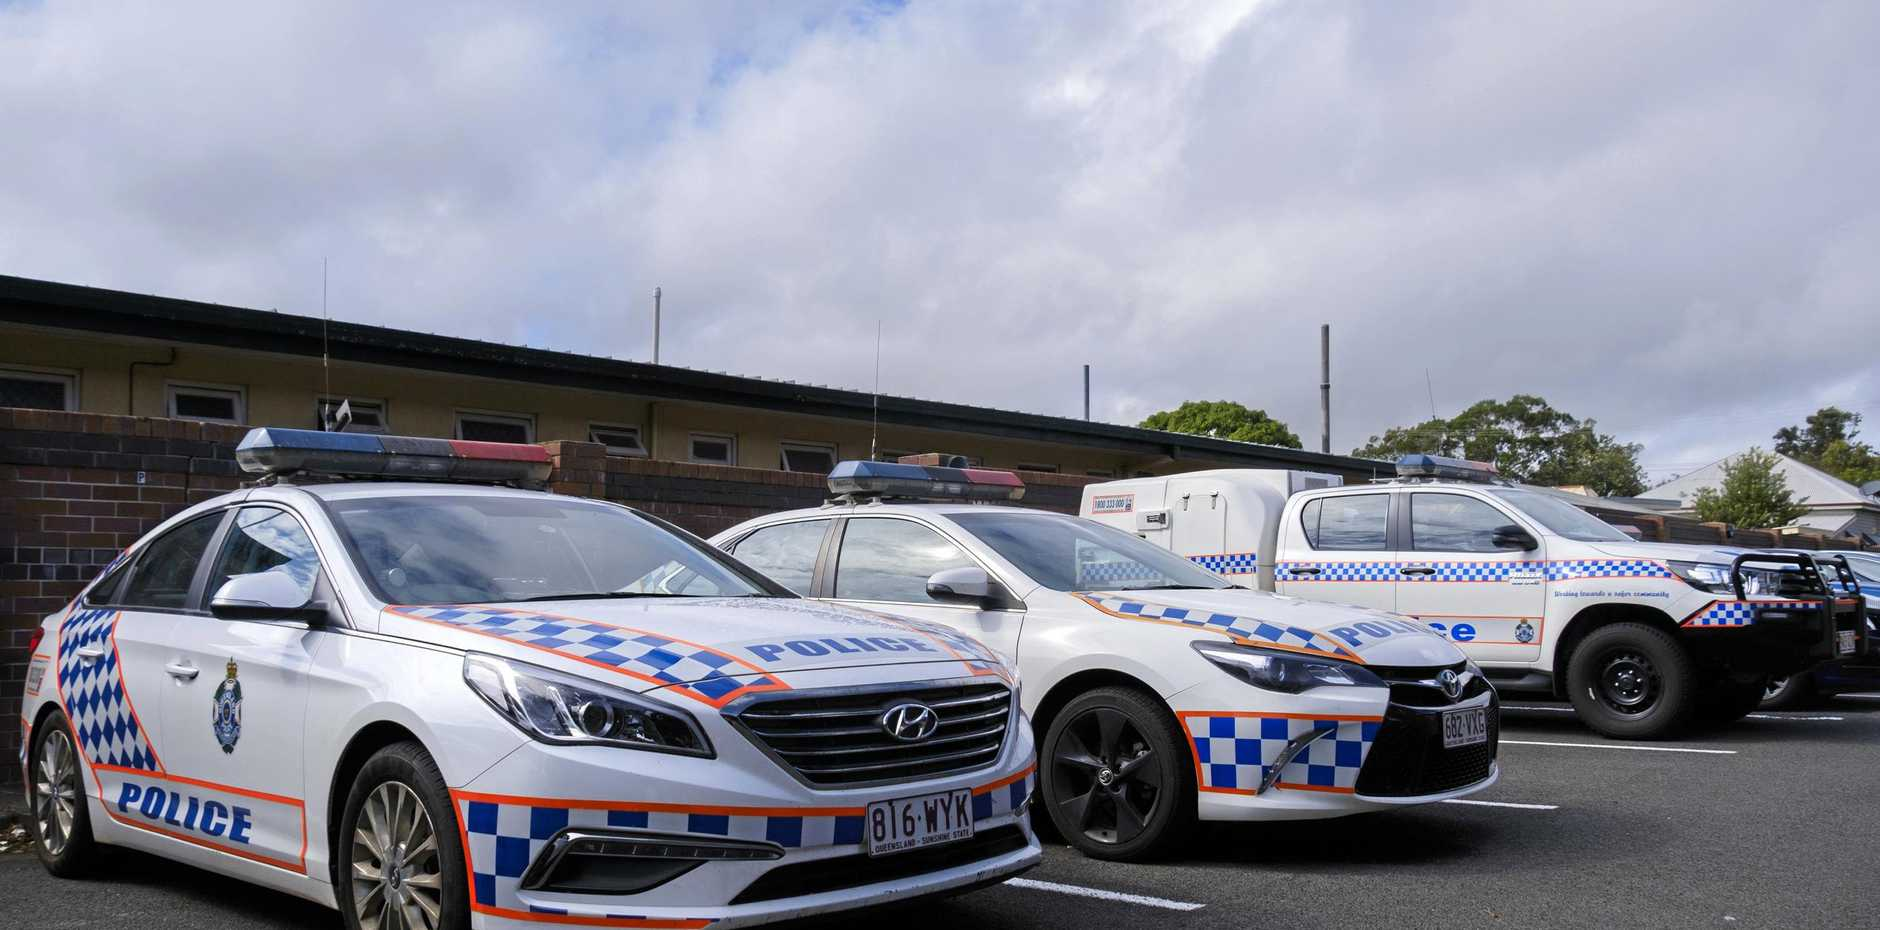 A 16 year old Goodna boy allegedly threw a rock at a home on Barber Street in Cherbourg.